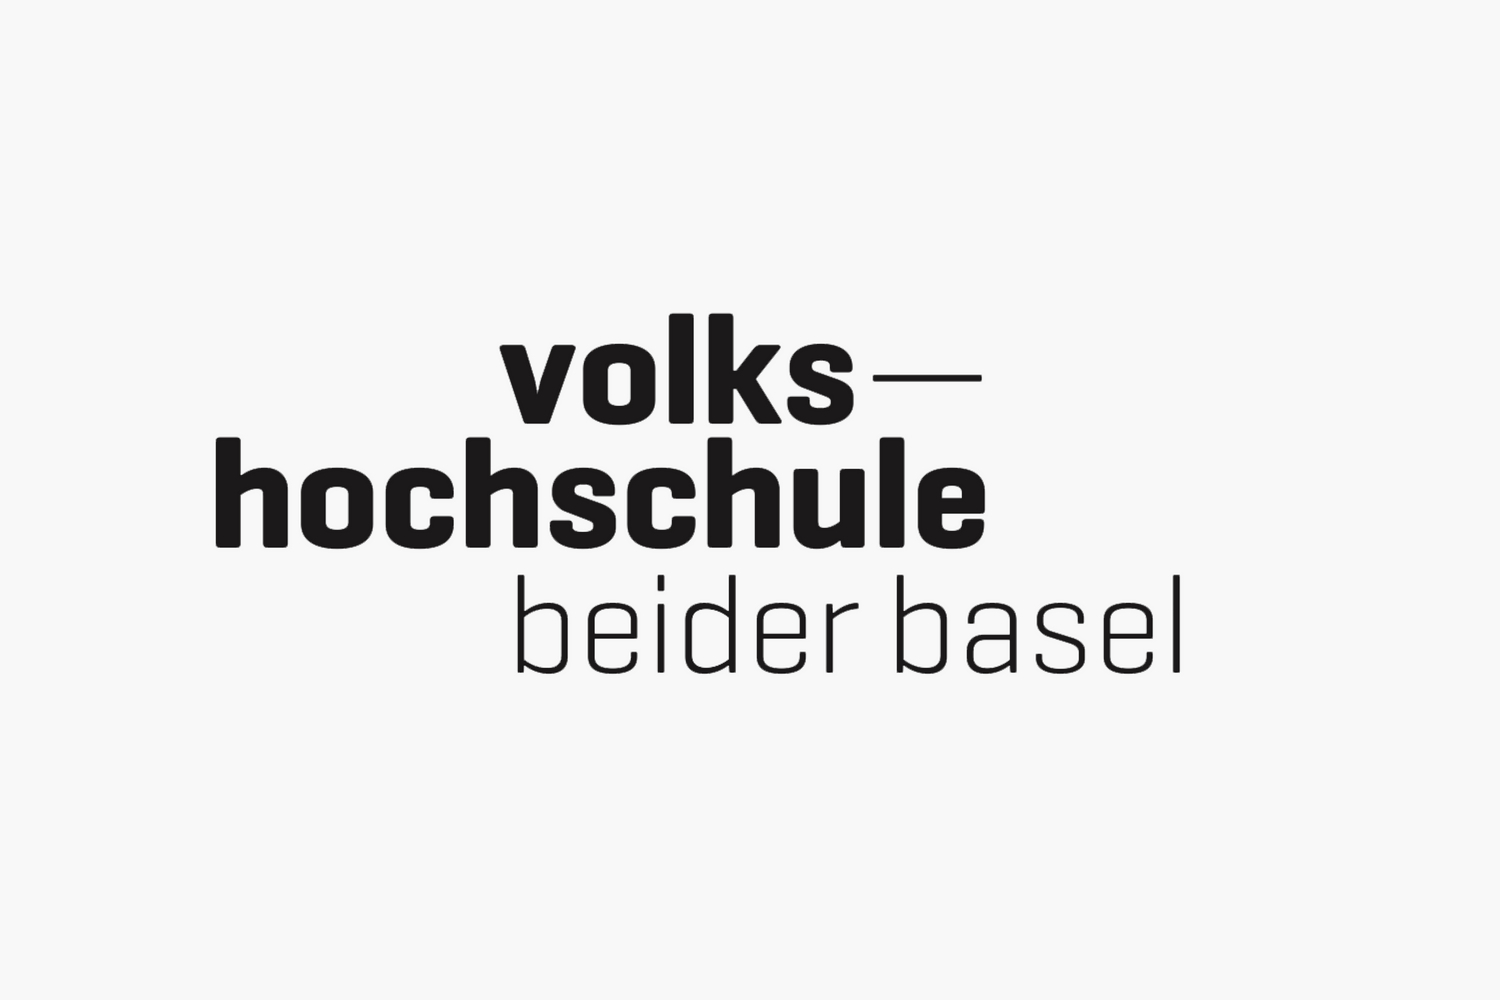 Online Marketing - onlineKarma supports the Volkshochschule beider Basel (VHSBB) in various online marketing endeavours. VHSBB is a non-profit language school and organisation for courses and further education in Basel since around 100 years